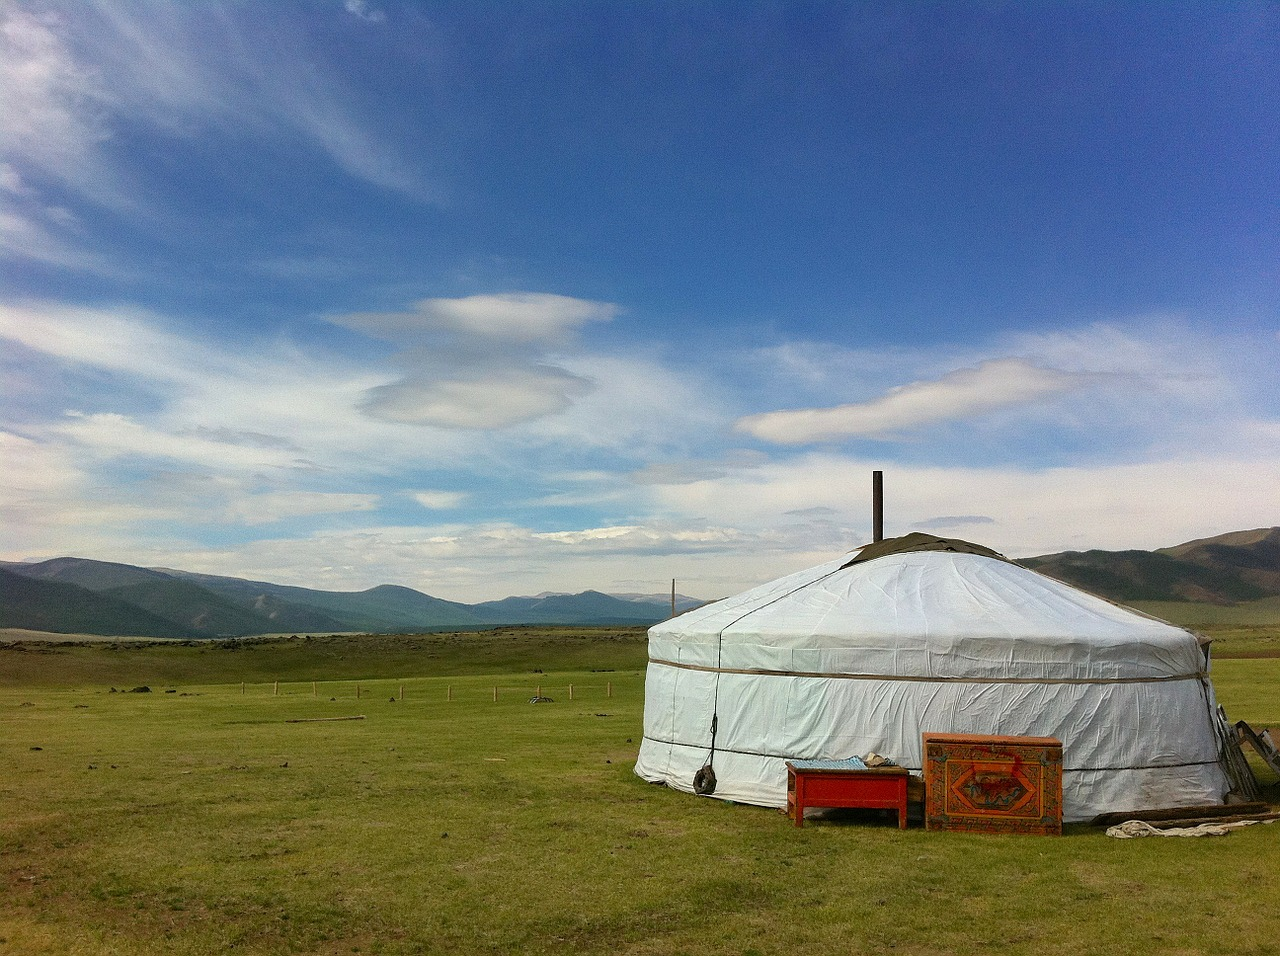 mongolia landscape sky free photo